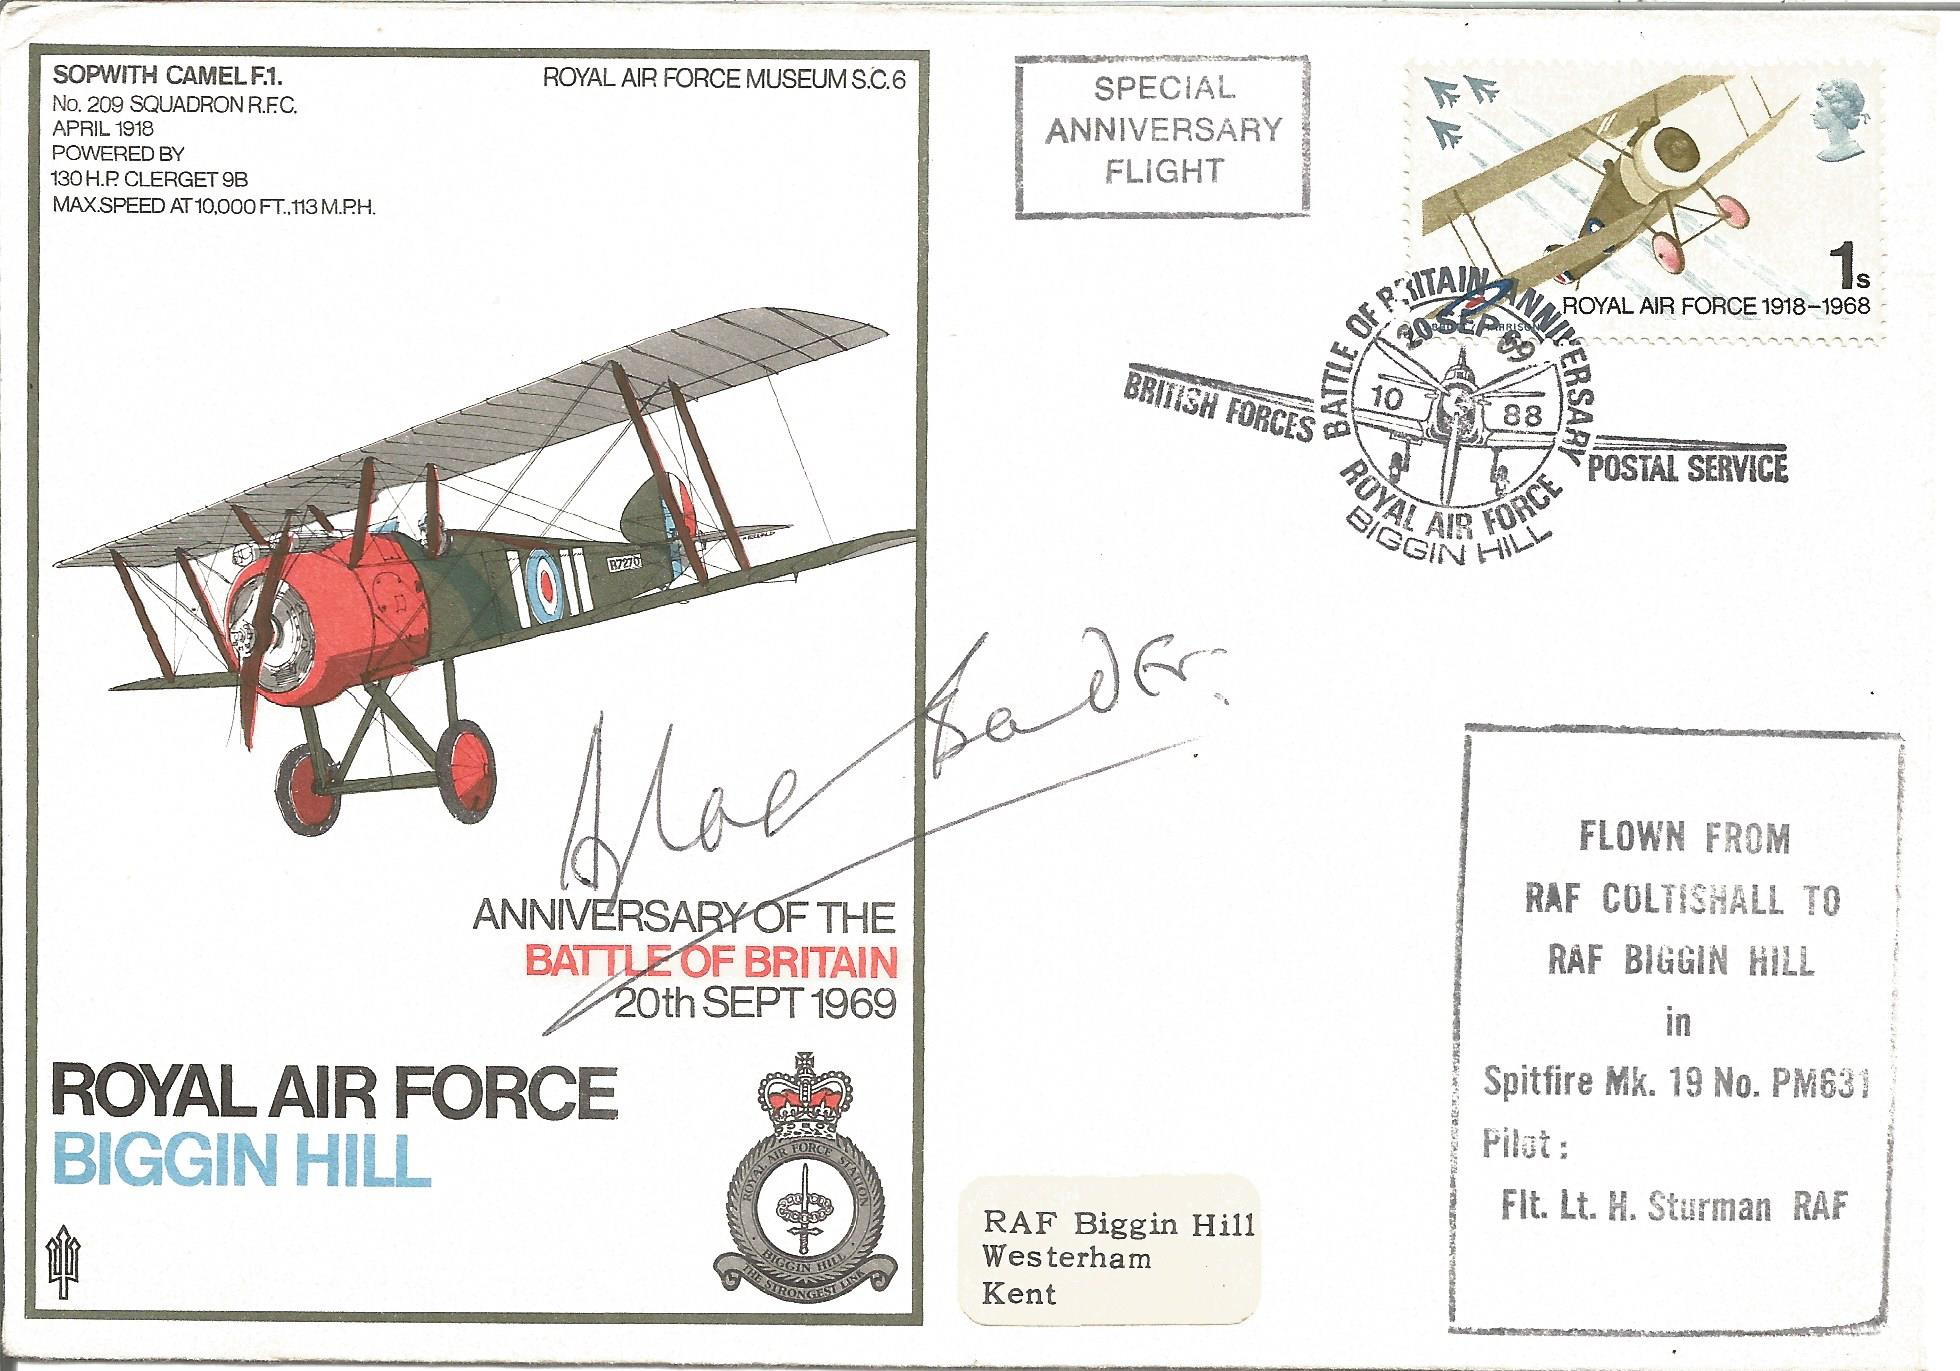 Douglas Bader signed RAF Biggin Hill Anniversary of the Battle of Britain 20th Sept 1969 FDC.